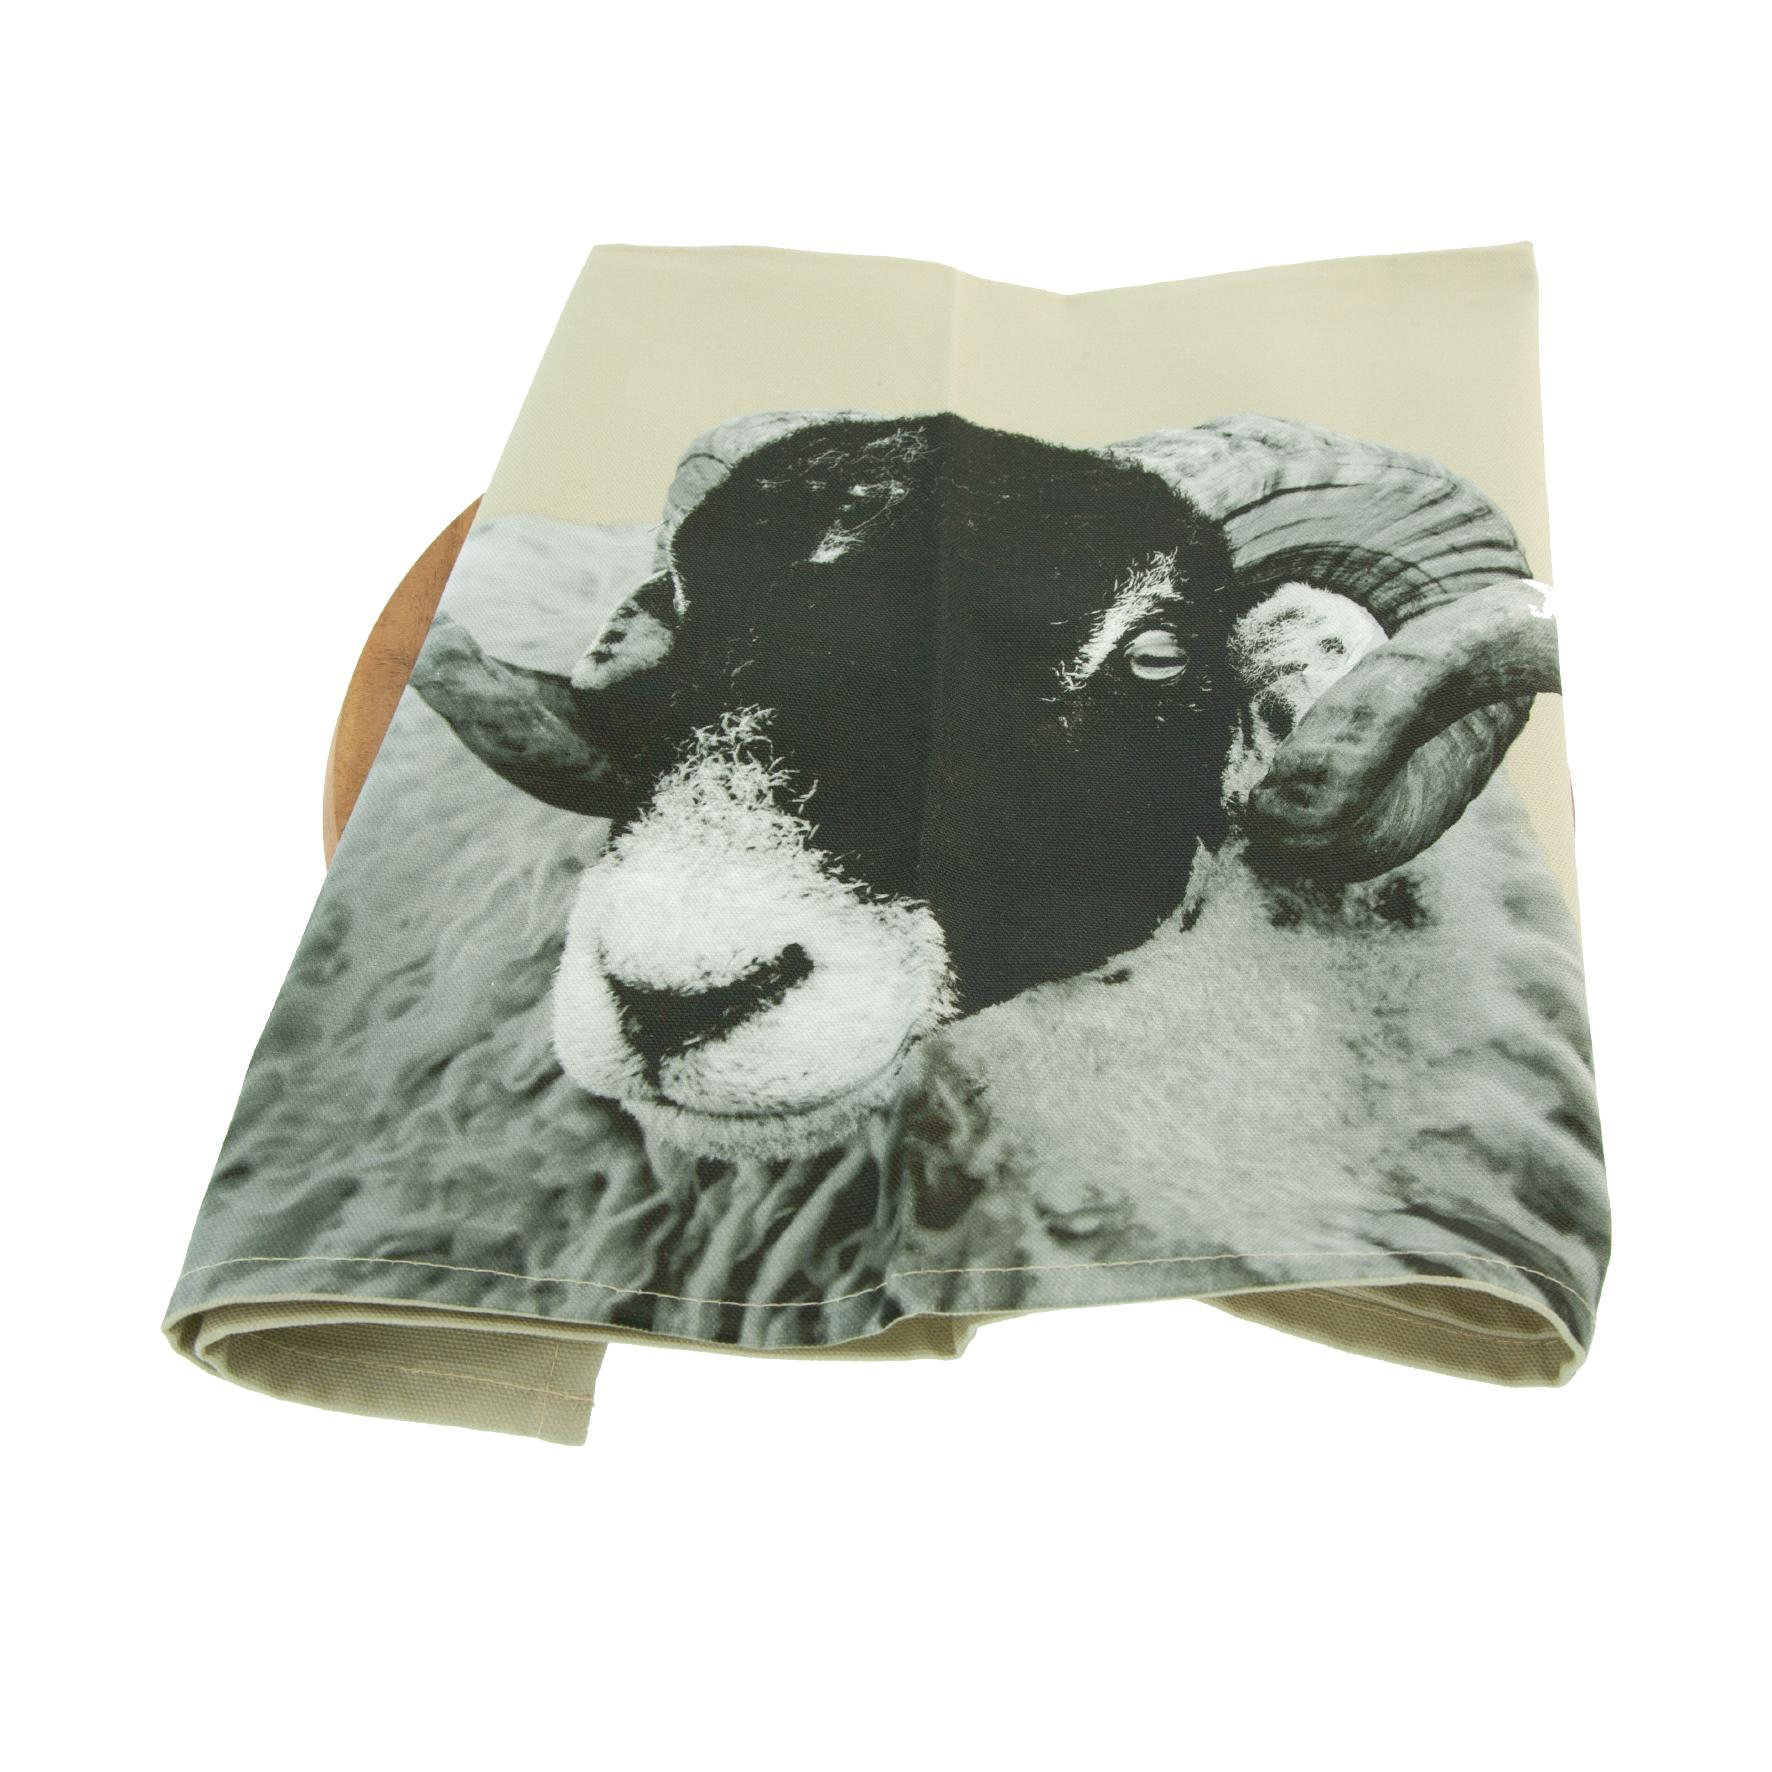 Swaledale sheep tea towel on sand grey